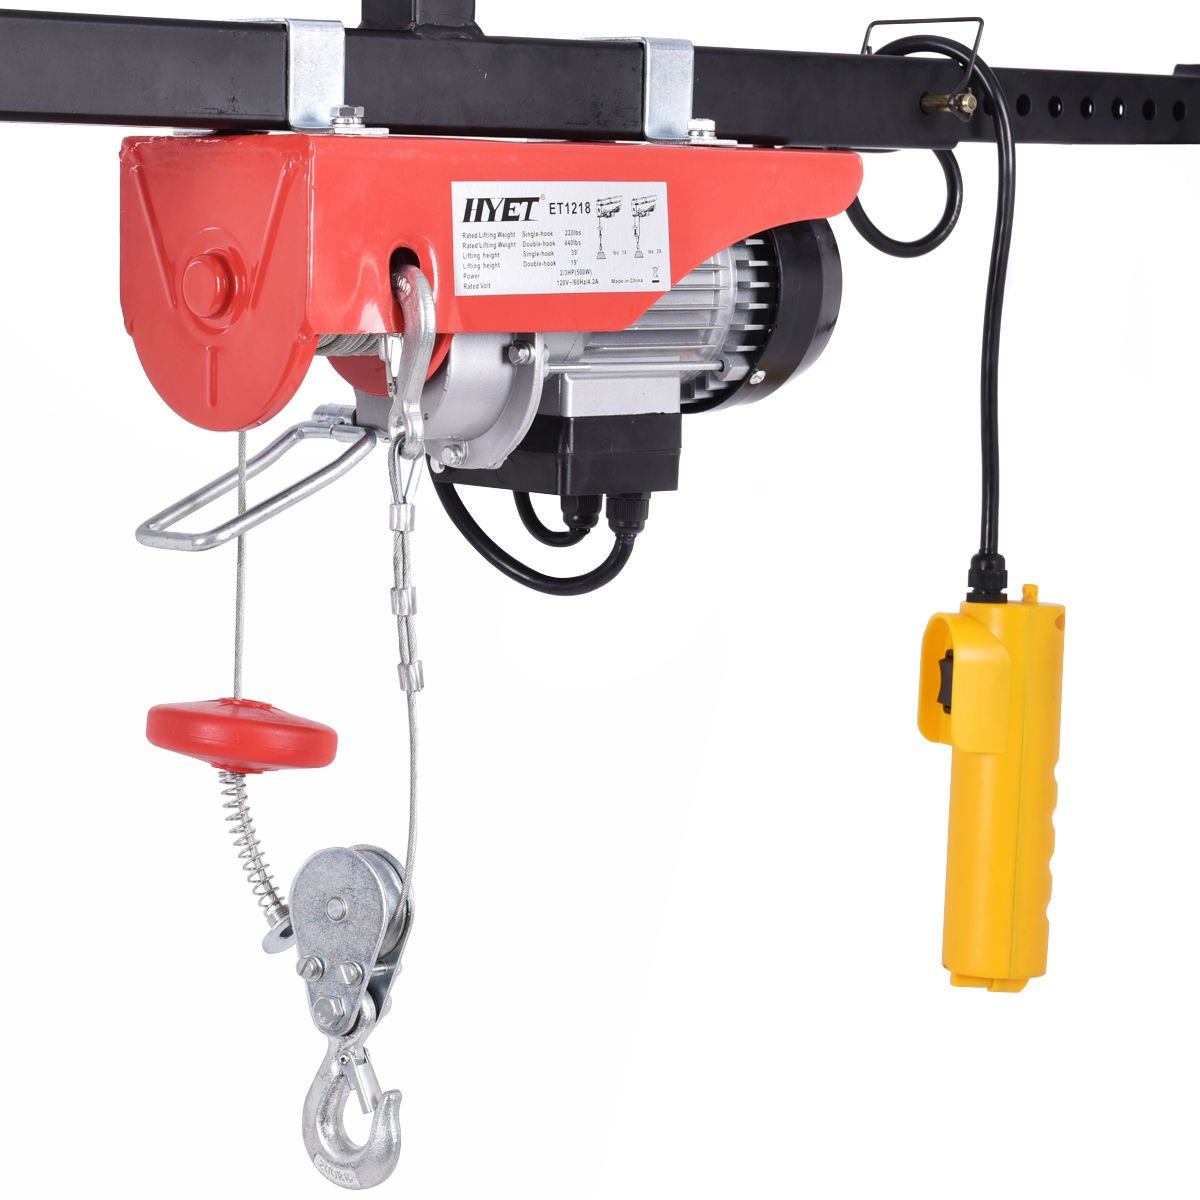 goplus lift electric hoist garage auto shop electric wire hoist overhead lift w remote control (440lbs)